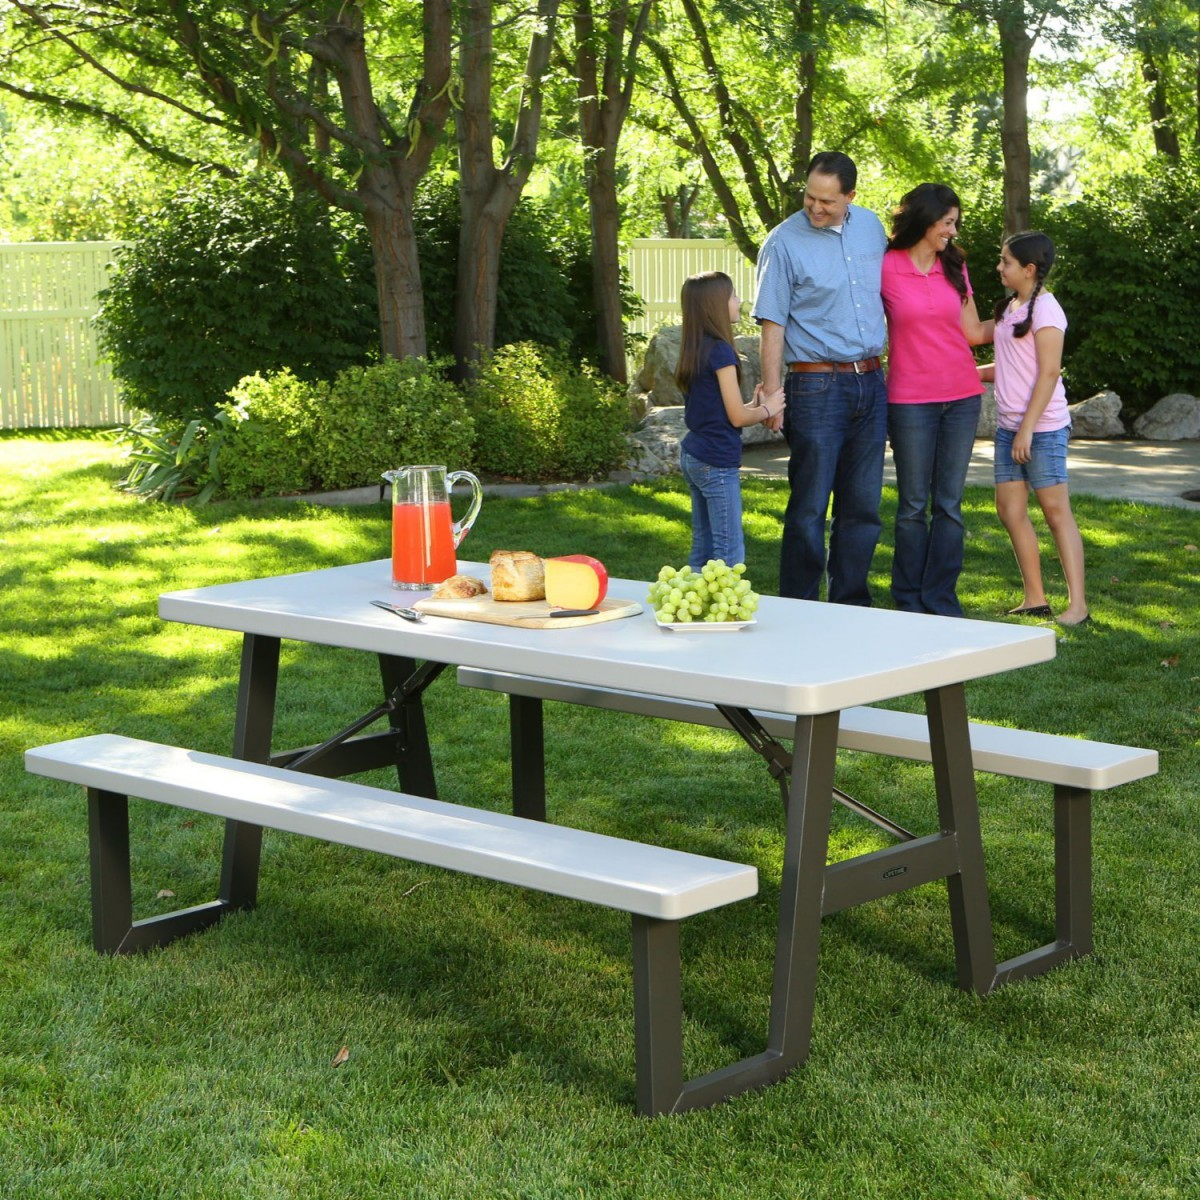 Lifetime 60030 W Frame 6 Foot Folding Picnic Table Bench